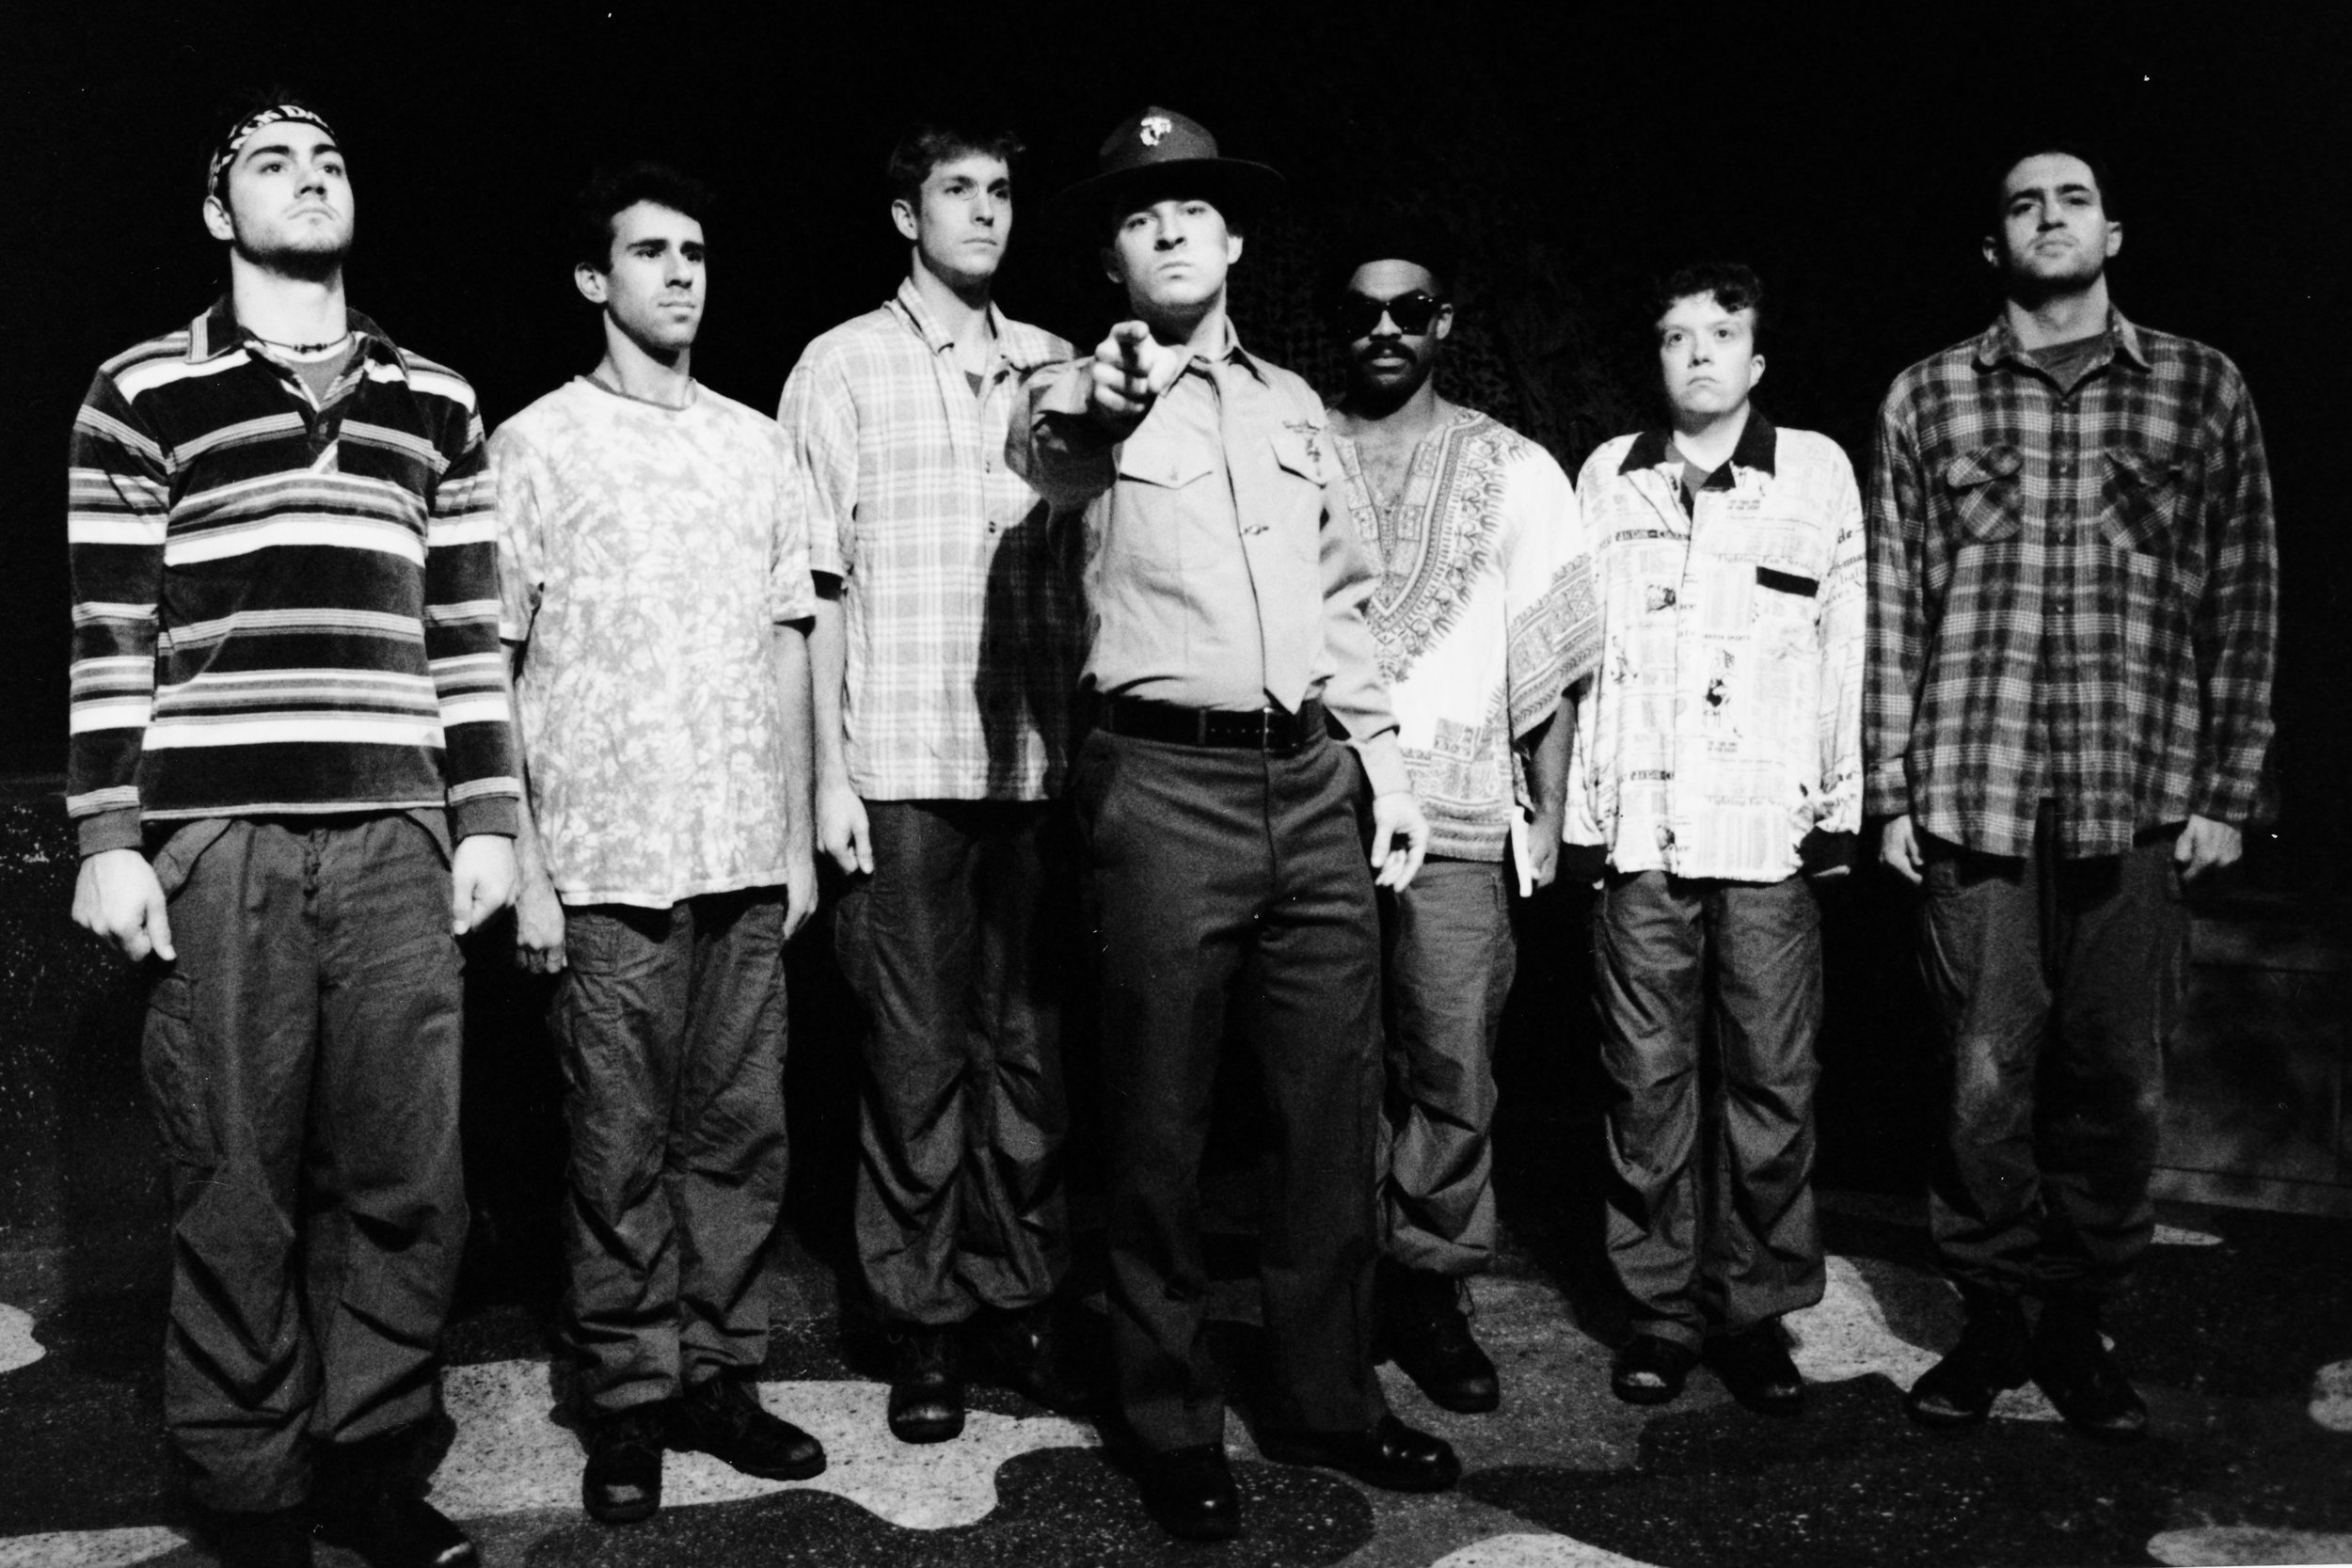 Chris Solari (Scooter), Chris Bilsky (Professor), William Vogt (Dinky Dau), Peter Winfield (Sgt. Williams), Gene Fereaud (Habu), Scott Freeburg (Baby San), and Scott Donnelly (Little John) in Draw the Sneck Productions'1996 | 1997 productions of  Tracers , directed by John Drouillard.  Photo by Paul Backer.